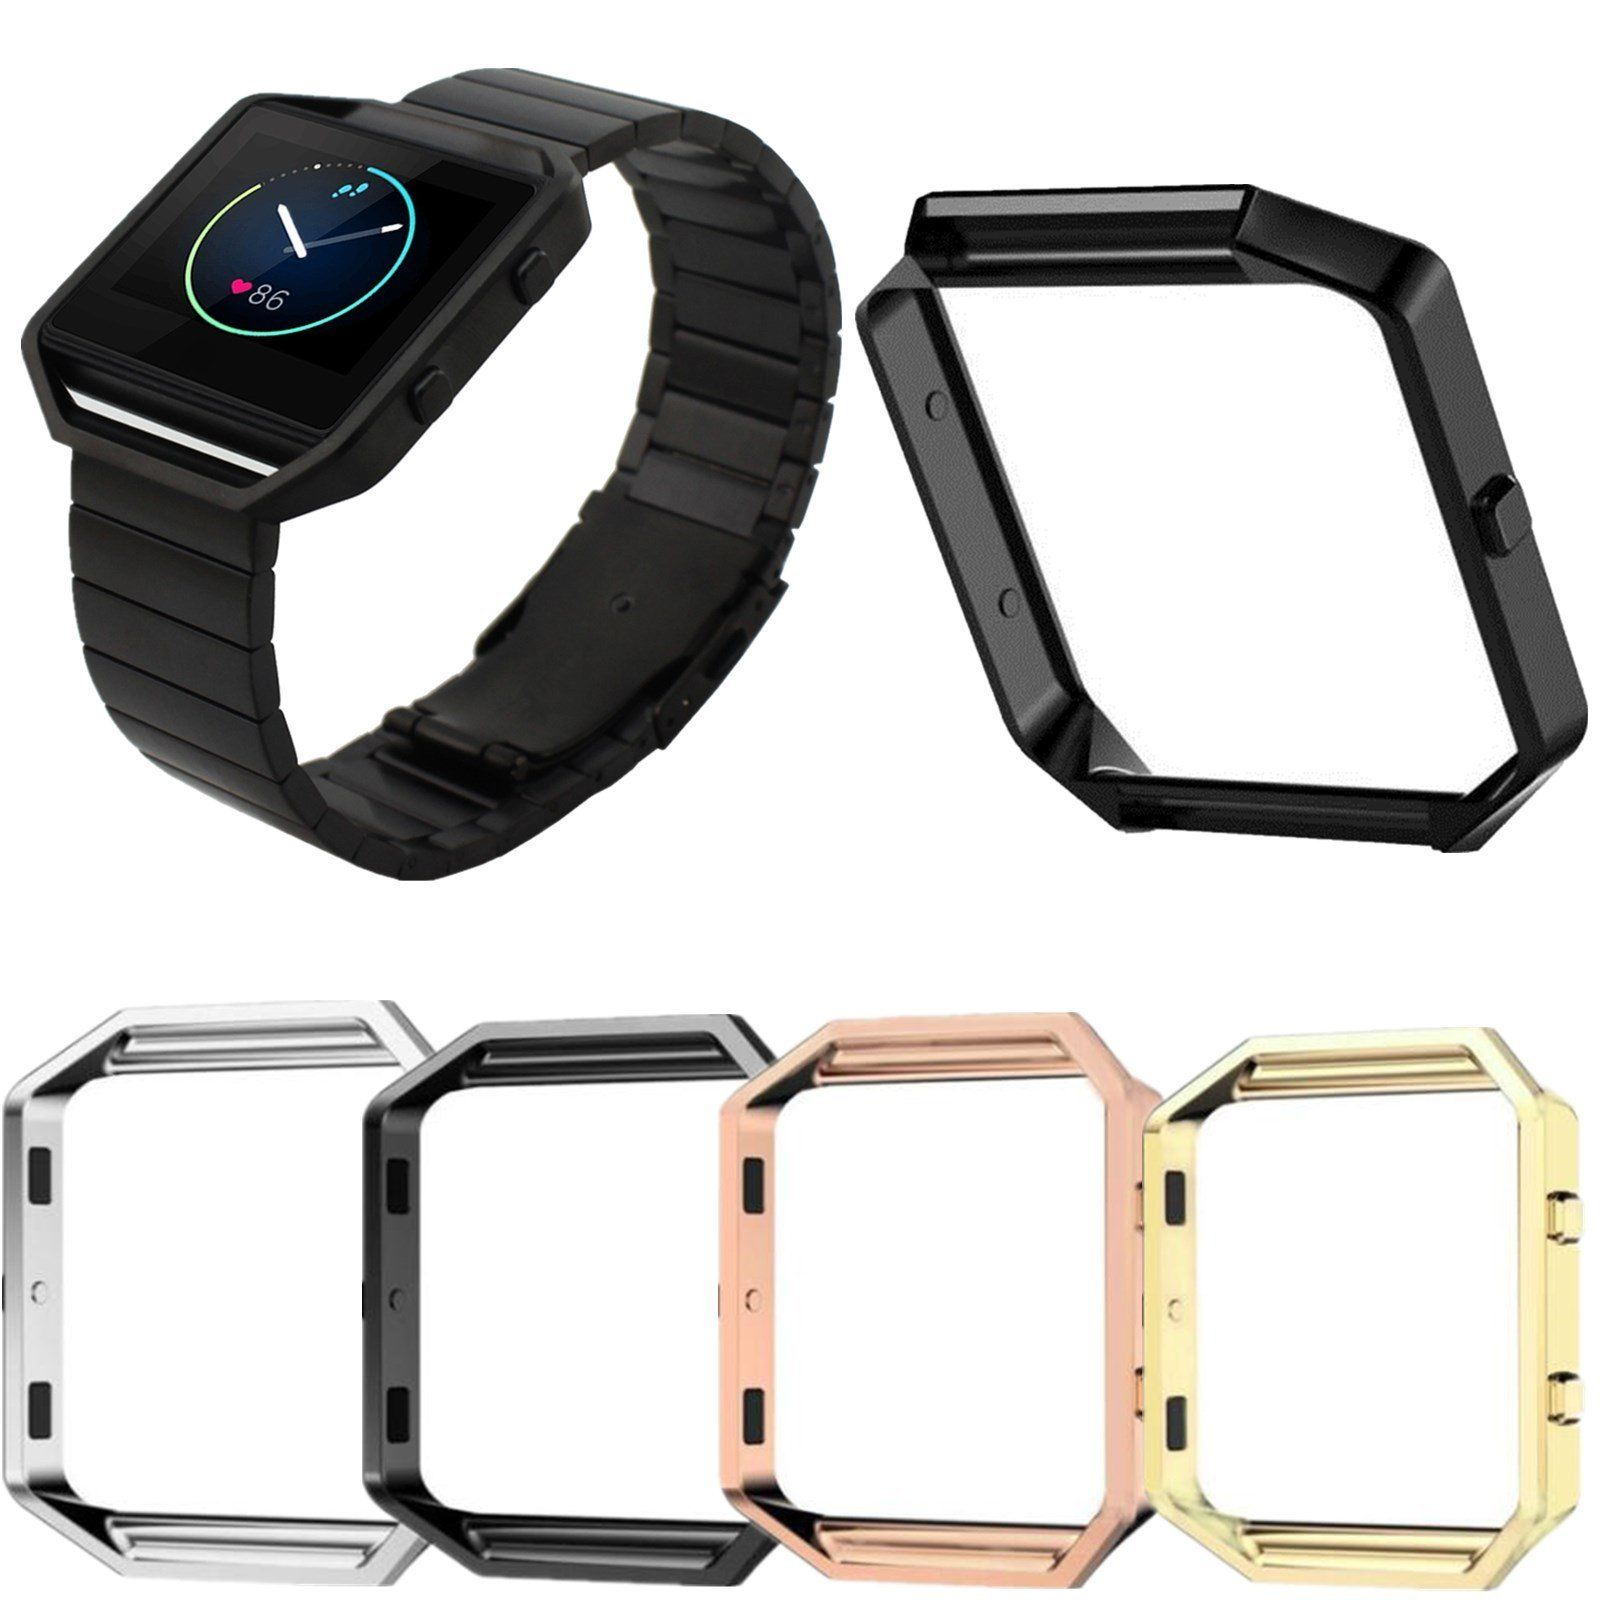 Stainless Steel Metal Link Watch Band Strap Frame Holder Case Cover For Fitbit Blaze Fitness Tracker Watch Replacement Bracelet crested stainless steel metal frame case cover shell for fitbit blaze replacement case activity tracker smart watch accessories